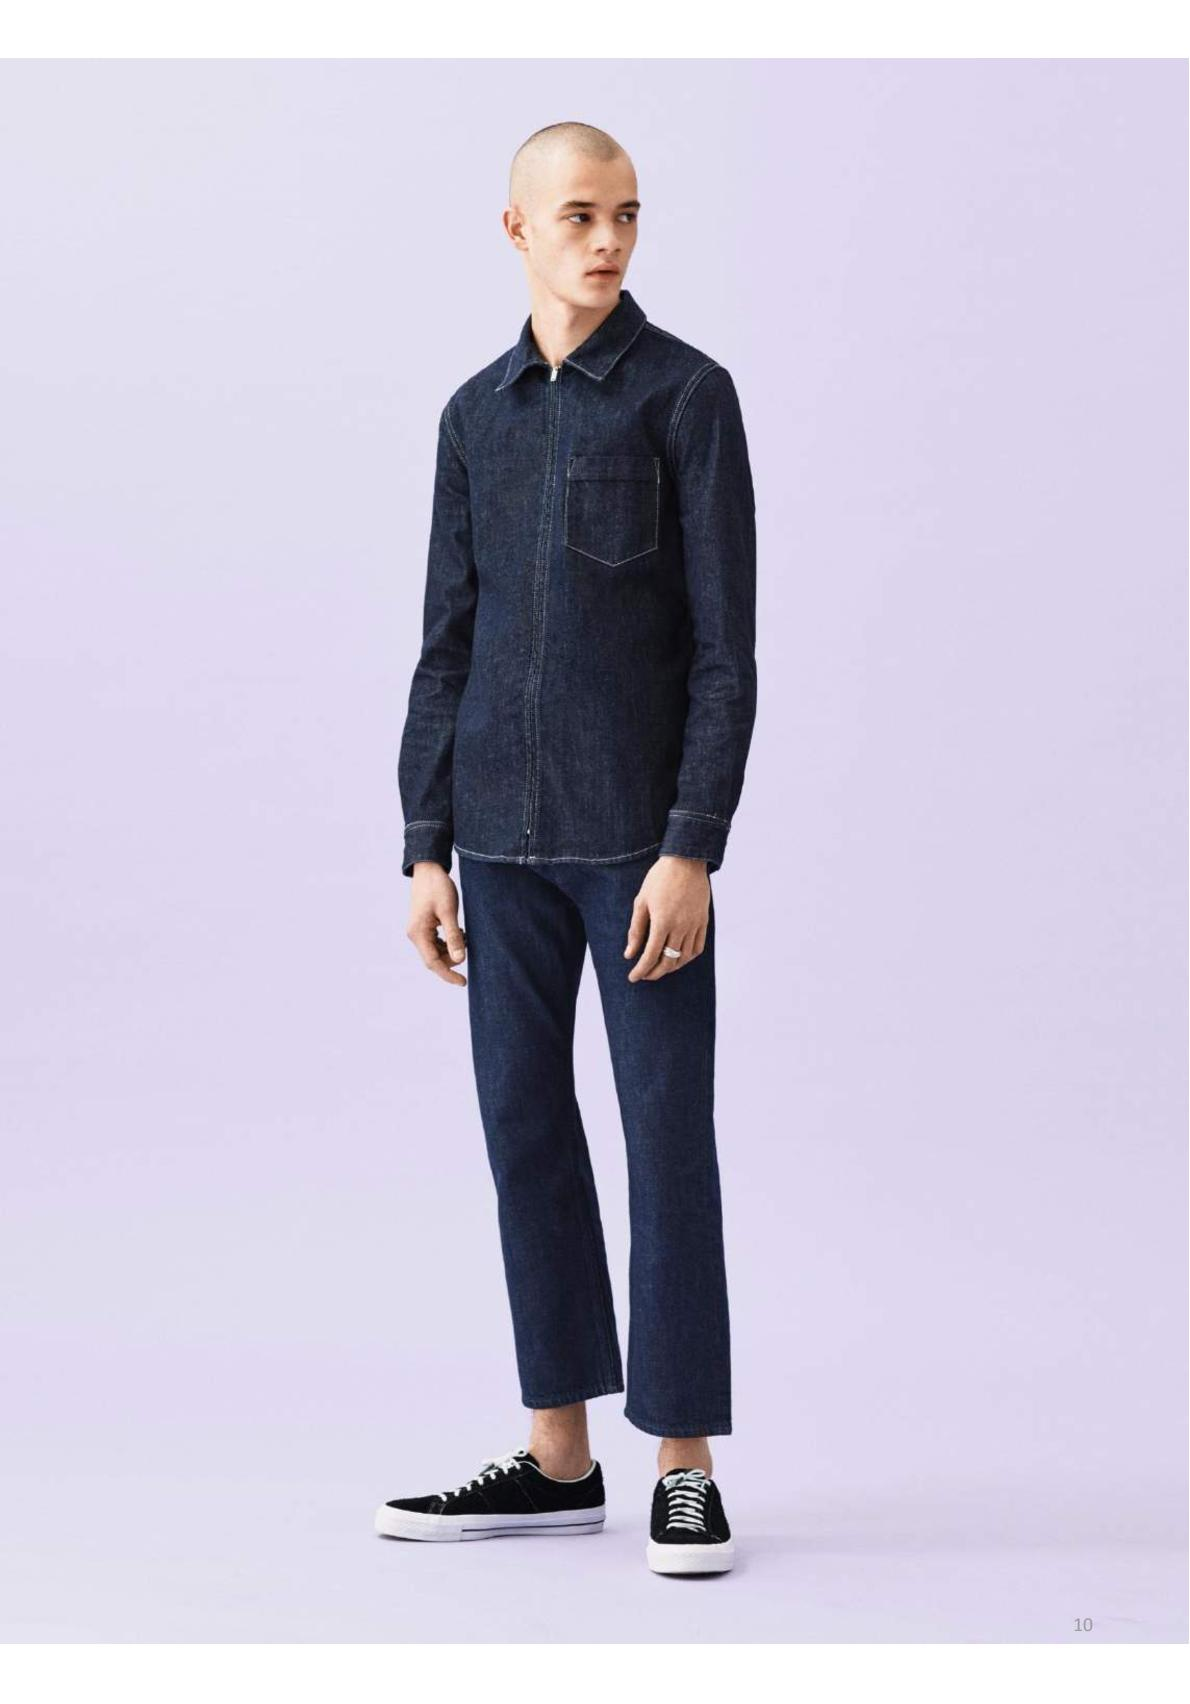 a1_weekday_ss17_lookbook_jean_campaign_low_res-page-011.jpg